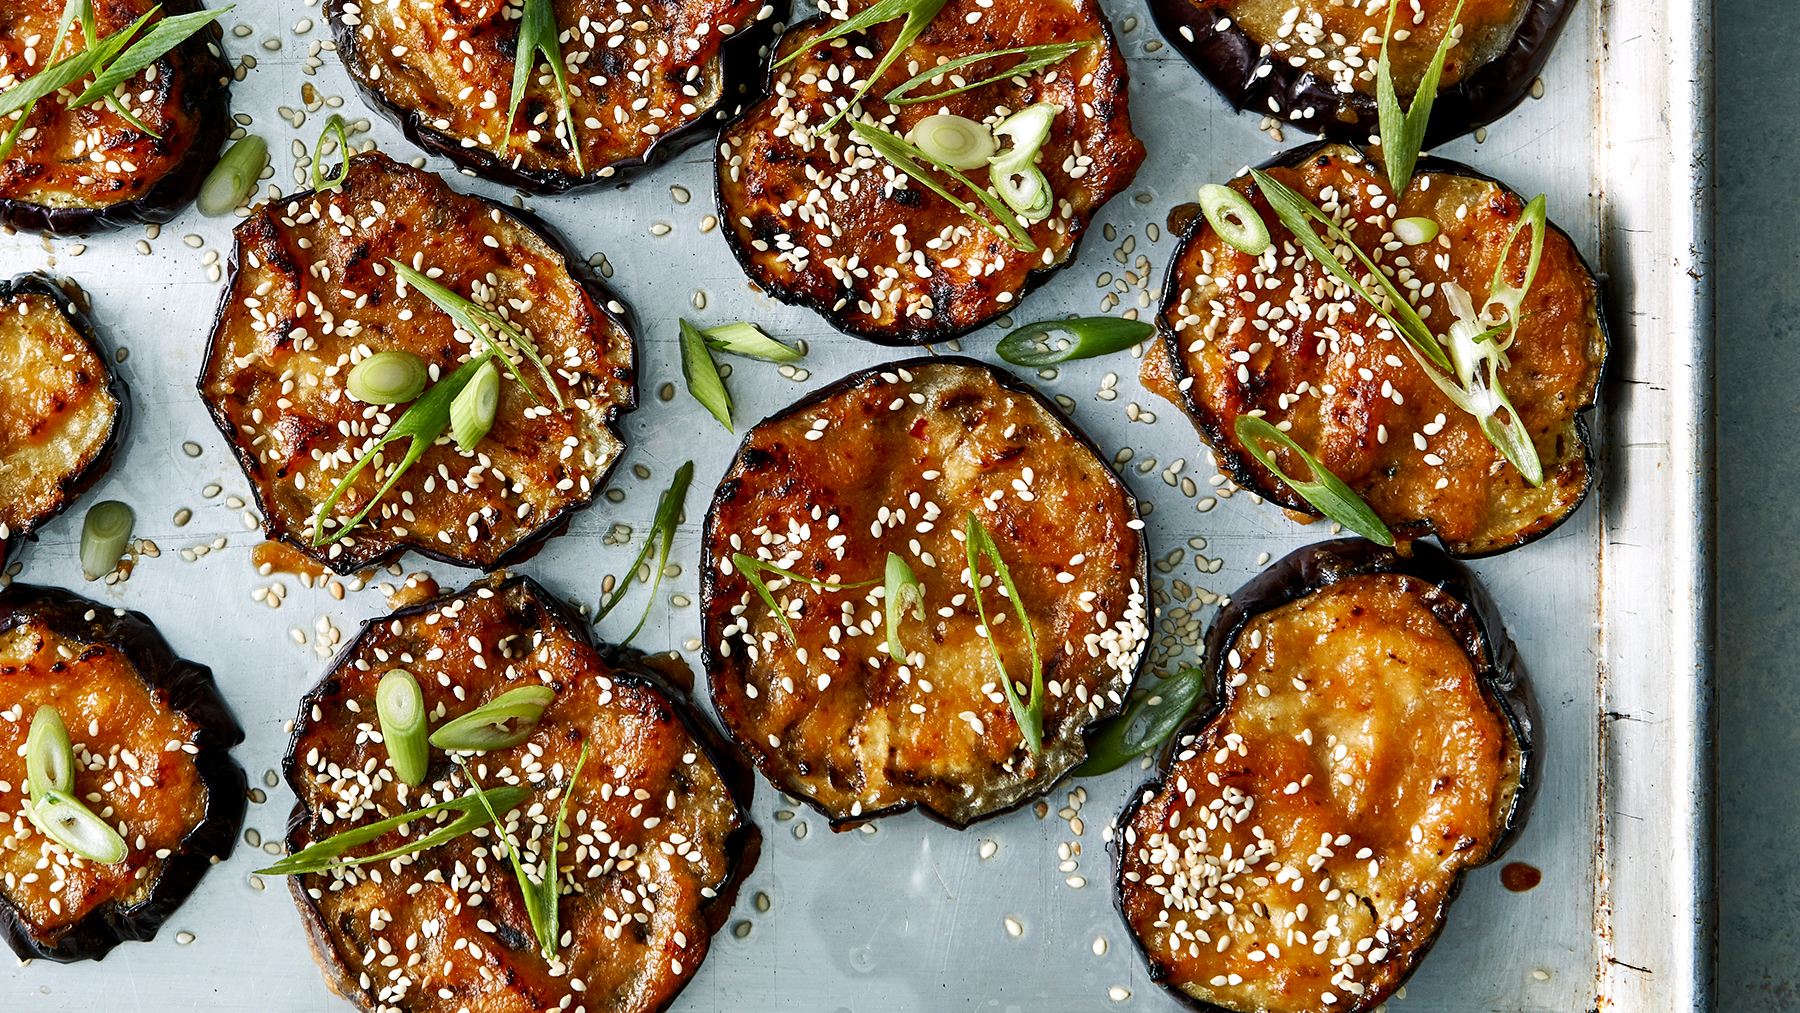 Easy eggplant recipes - grilled eggplant recipes and roasted eggplant recipes and more